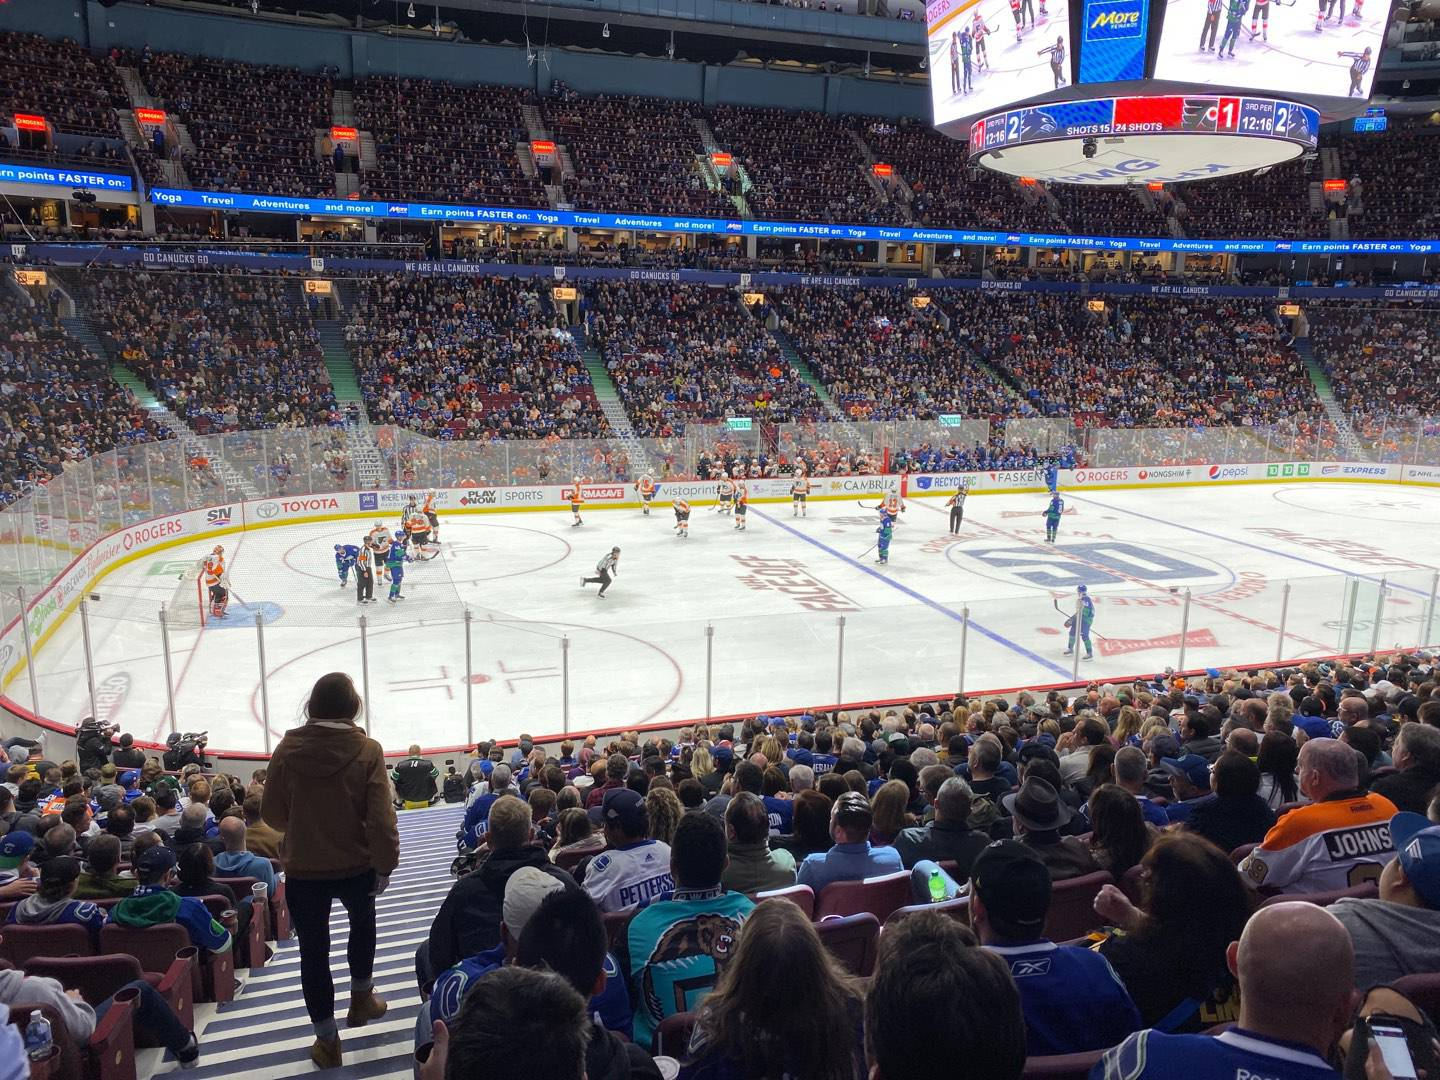 Rogers Arena Section 106 Row 20 Seat 1